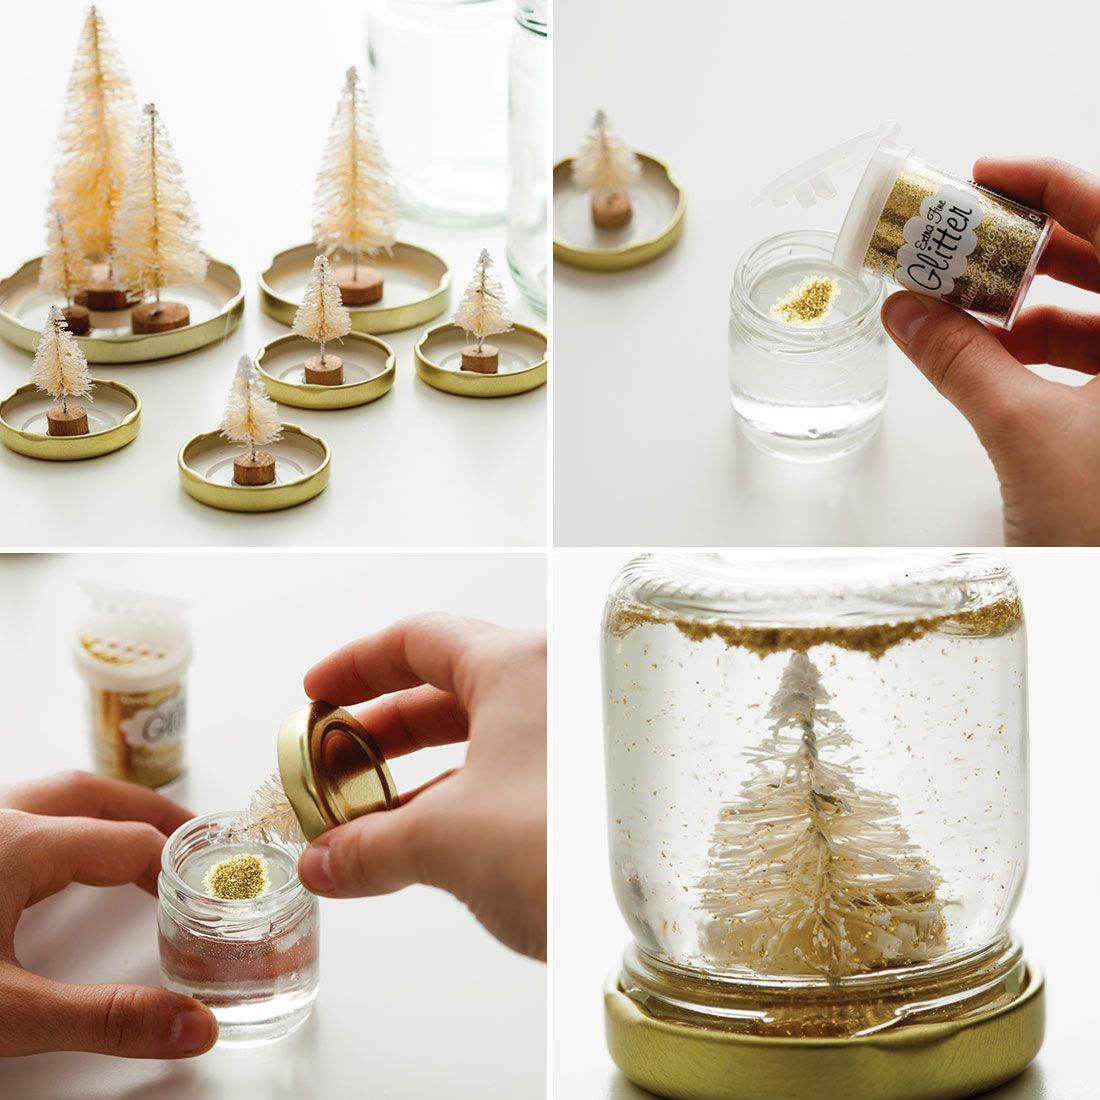 Make Your Own Snow Globe in Less Than 30 Minutes! Diy